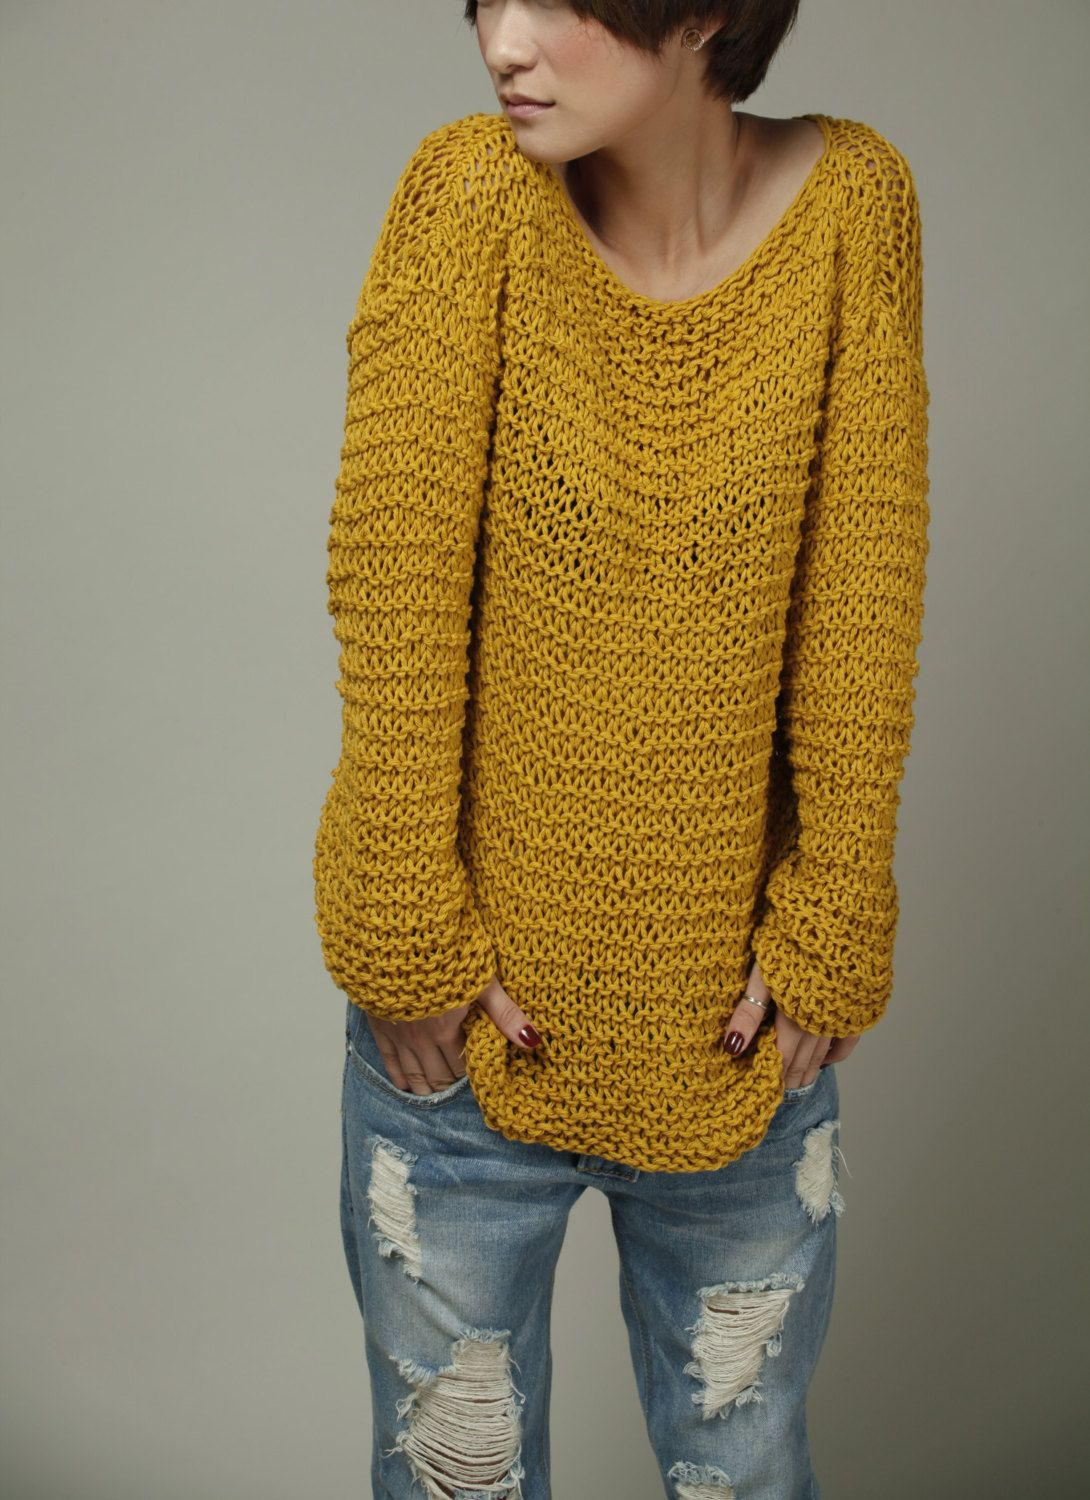 22a3d1f88 Simple is the best - Hand knitted Woman Sweater Eco Cotton Oversized in  Mustard Yellow